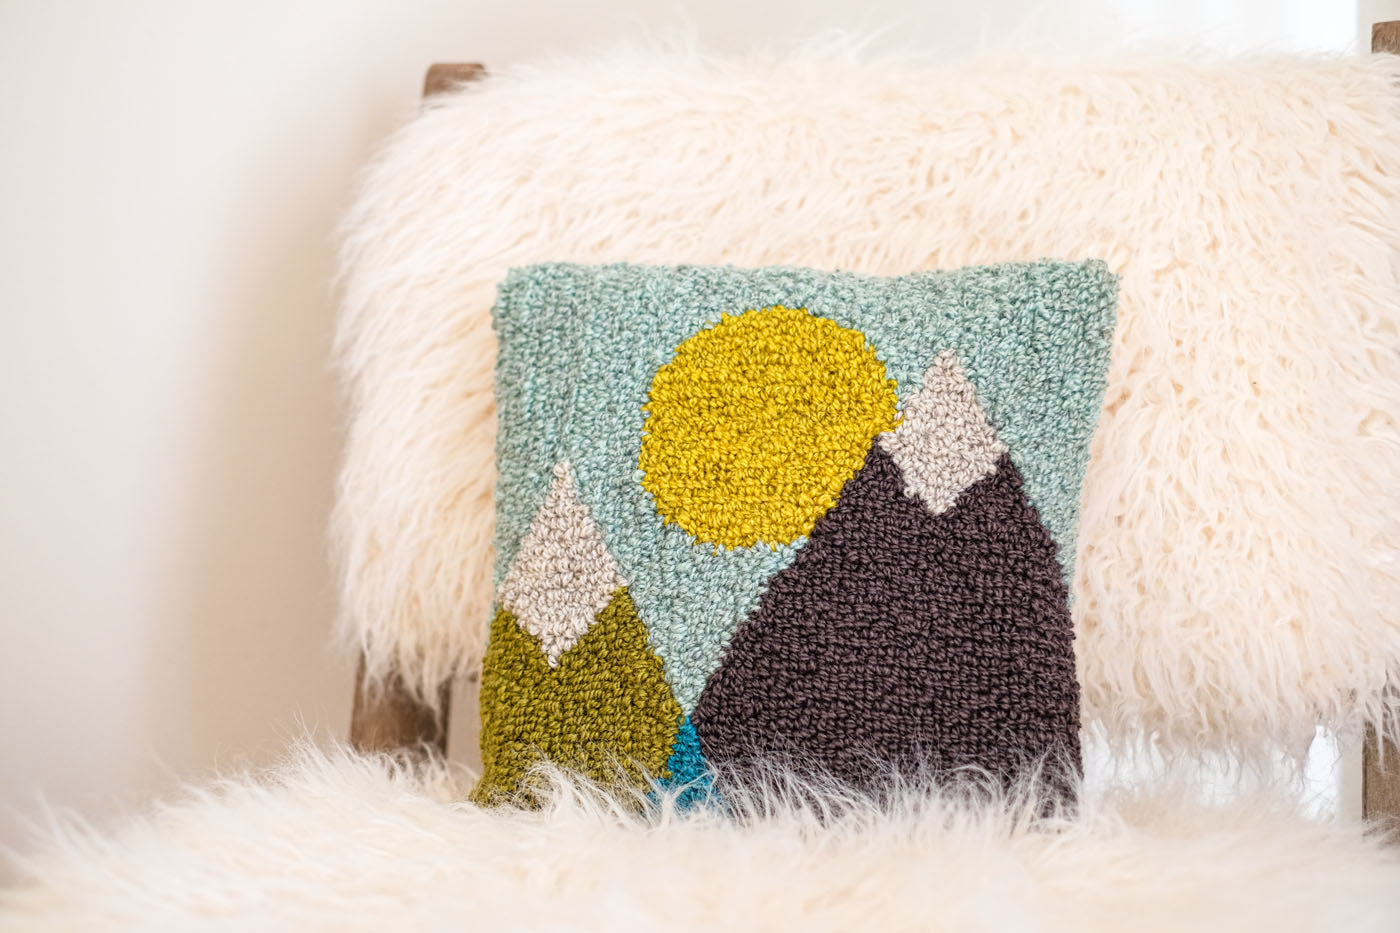 A punch needle pillow with geometric mountain and sun design. It is made in hues of green, blues, yellow, and grey, and is sitting on a plush sheepskin chair.